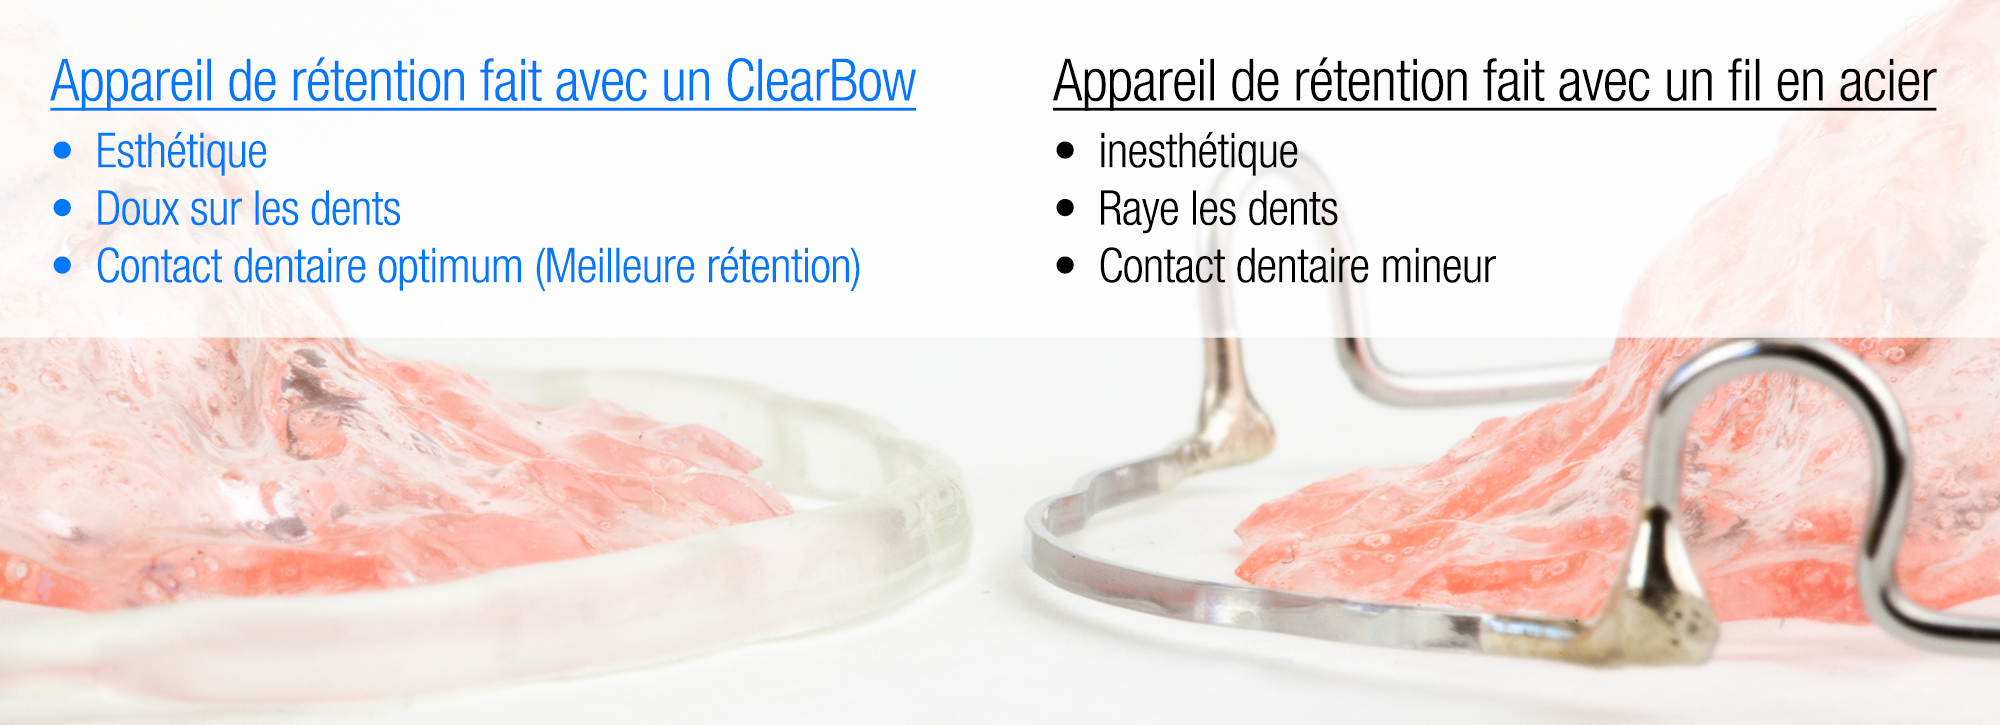 comparing_steel_and_clearbow_retainer_french_1